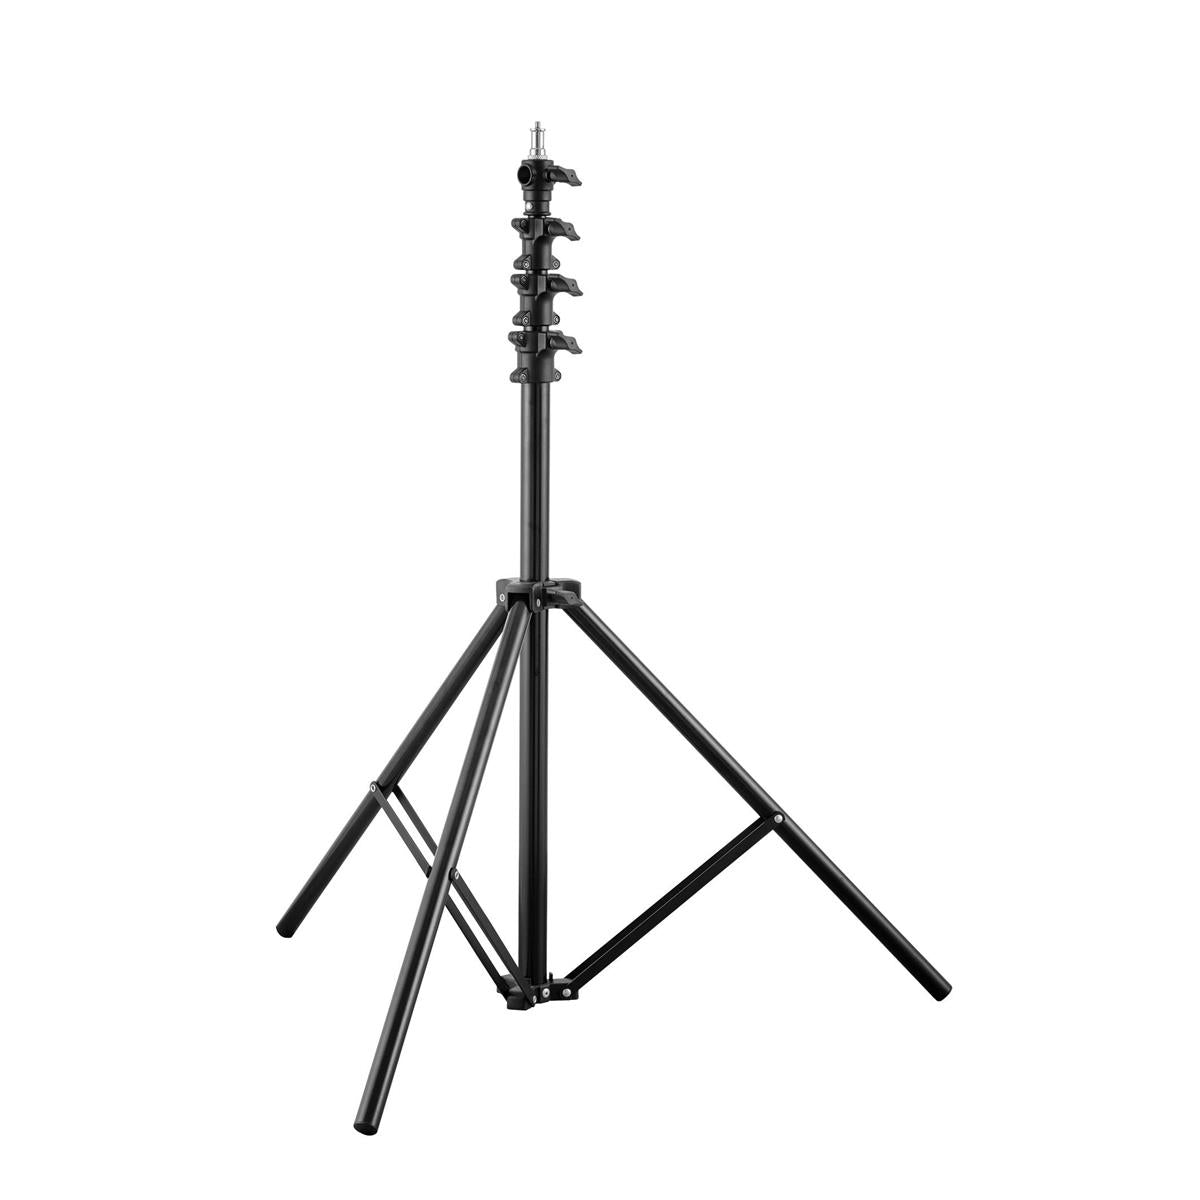 Studio Light Stand Air-cushion 9.2' /280cm